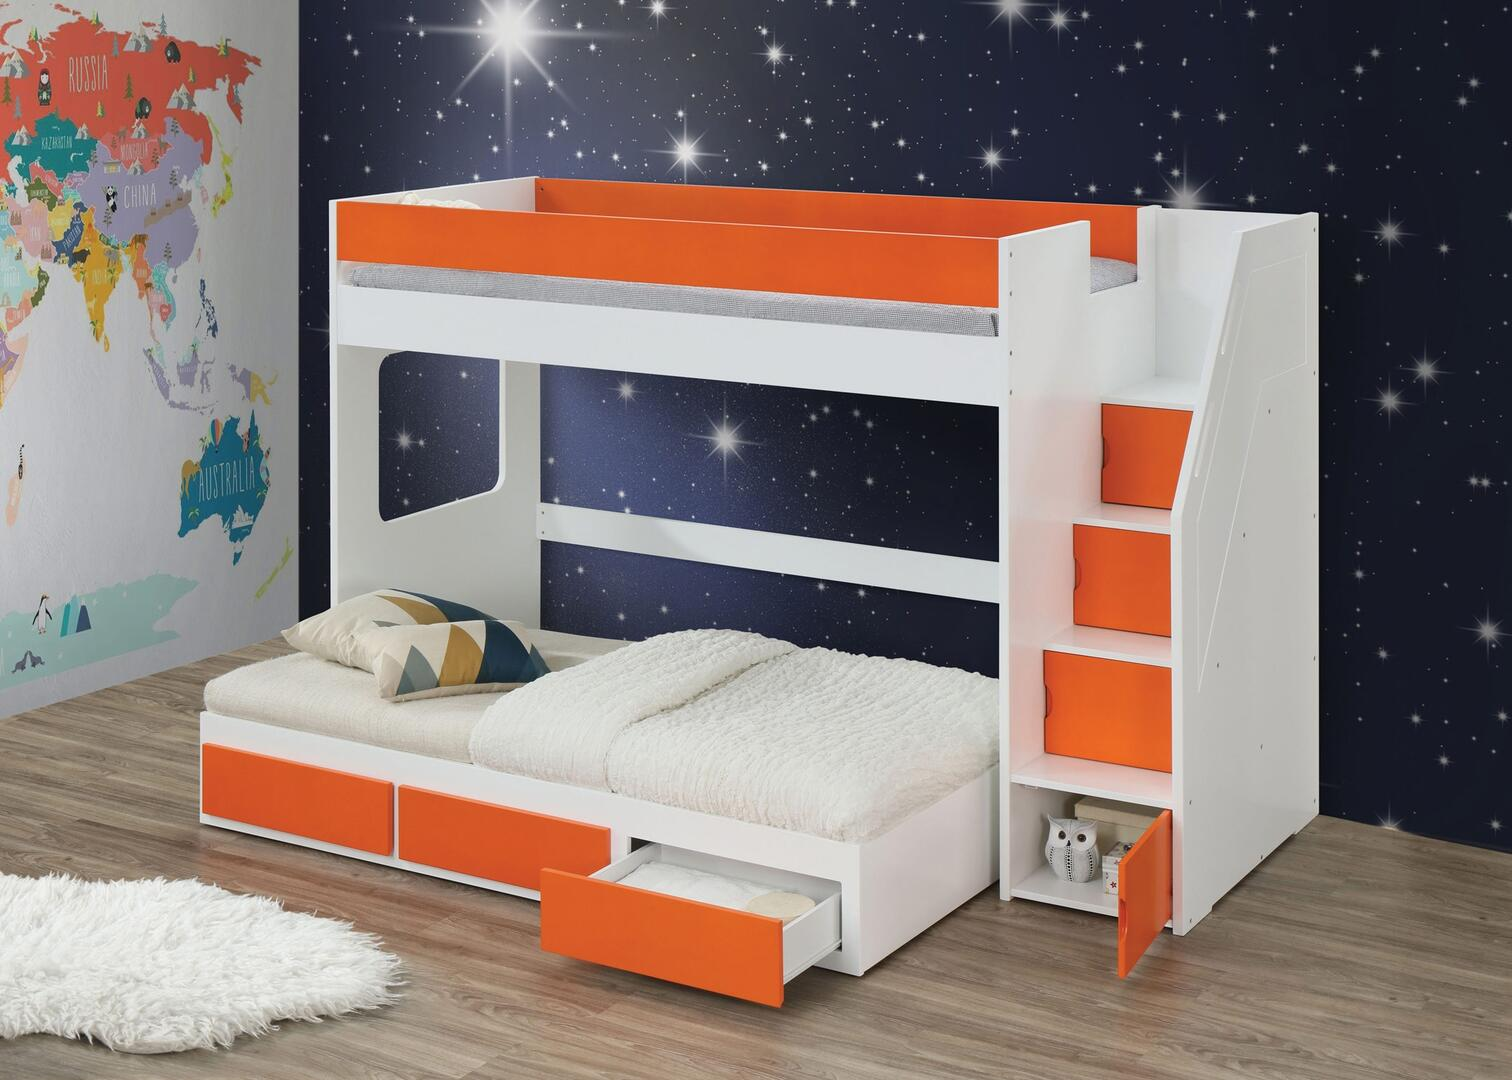 acme furniture template lawson collection 37460tr loft bed with rh appliancesconnection com